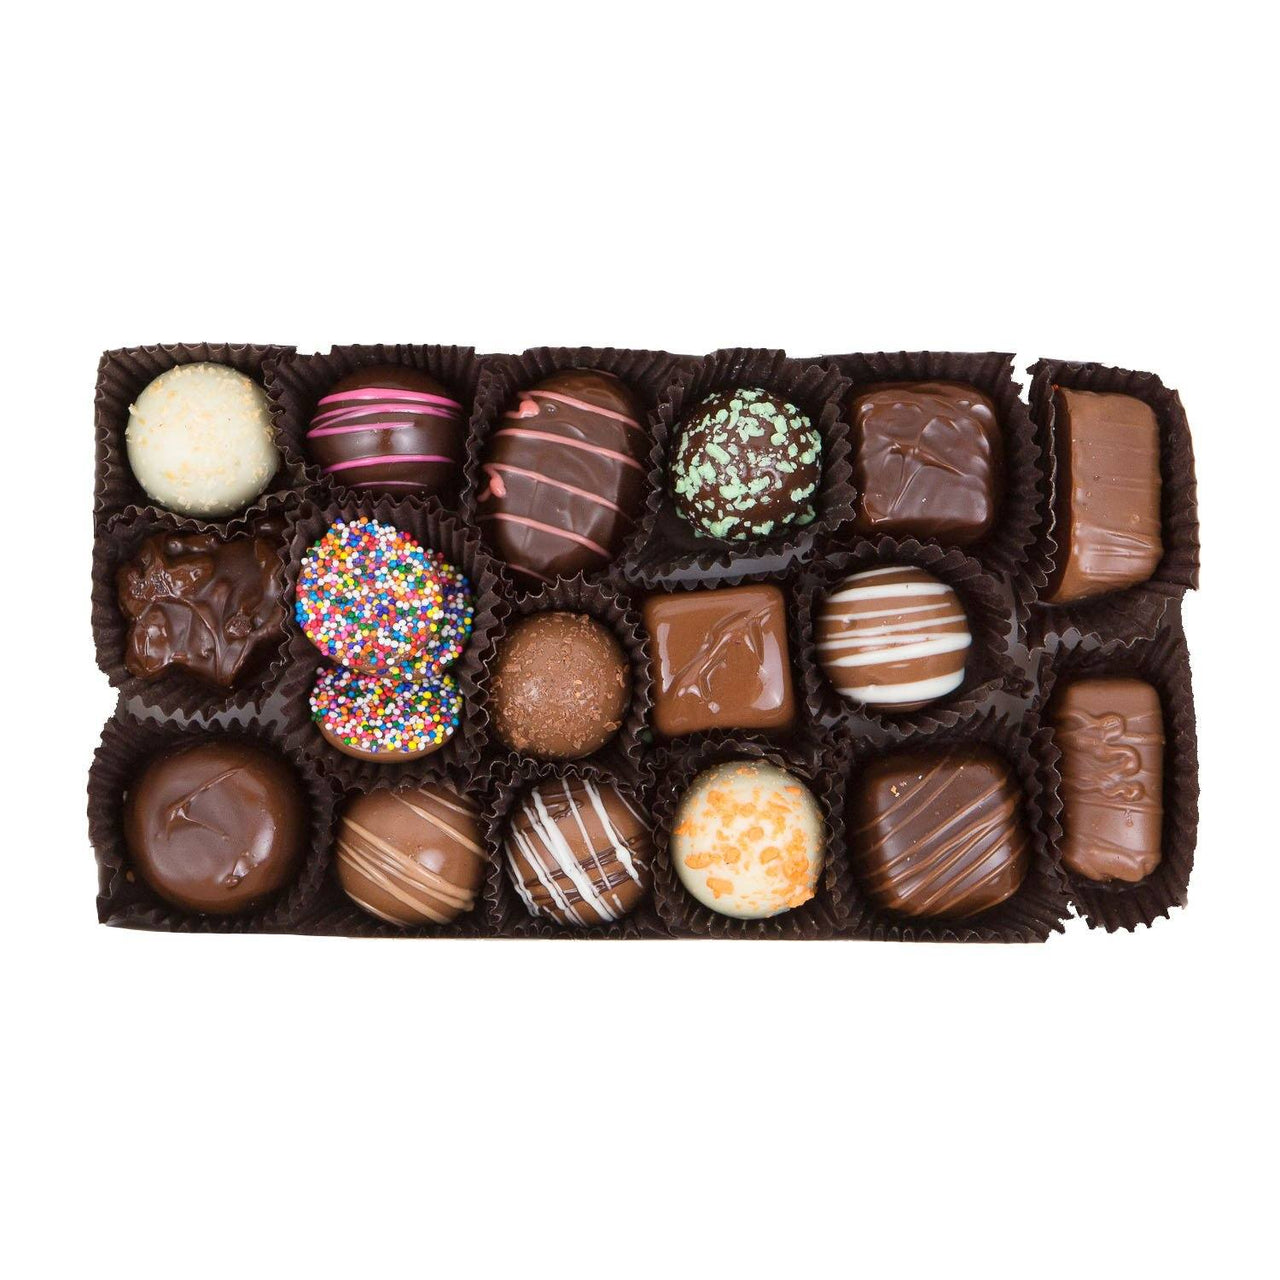 Gifts for Foodies - Assorted Chocolate Gift Box - Jackie's Chocolate